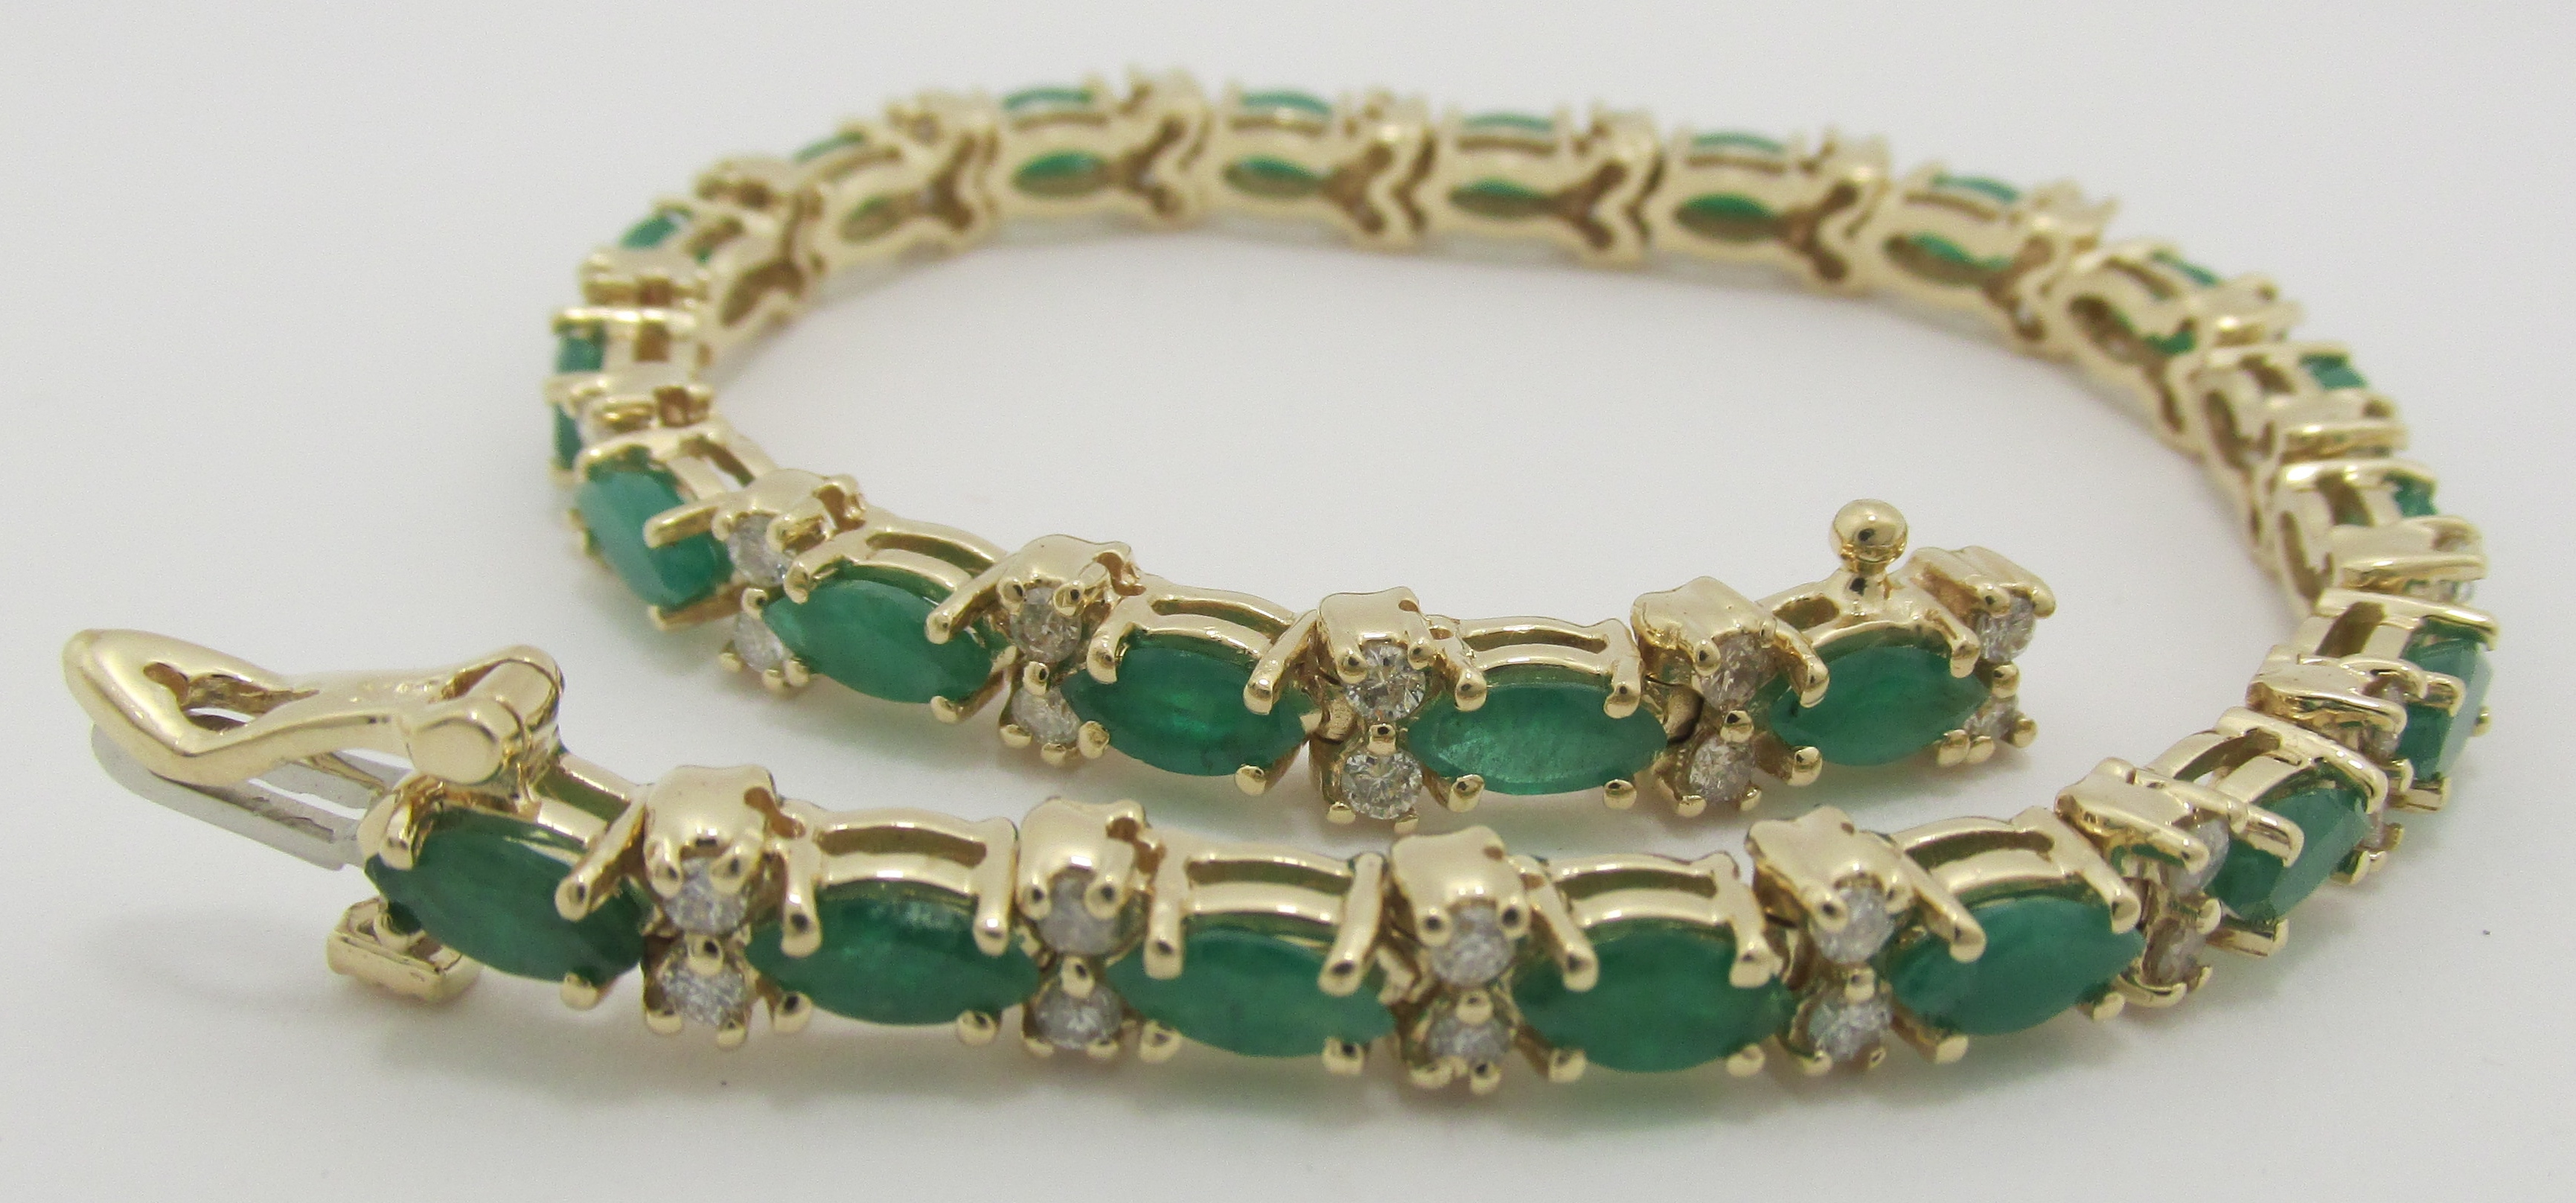 emerald line and of diamond weldons shop dublin bracelet